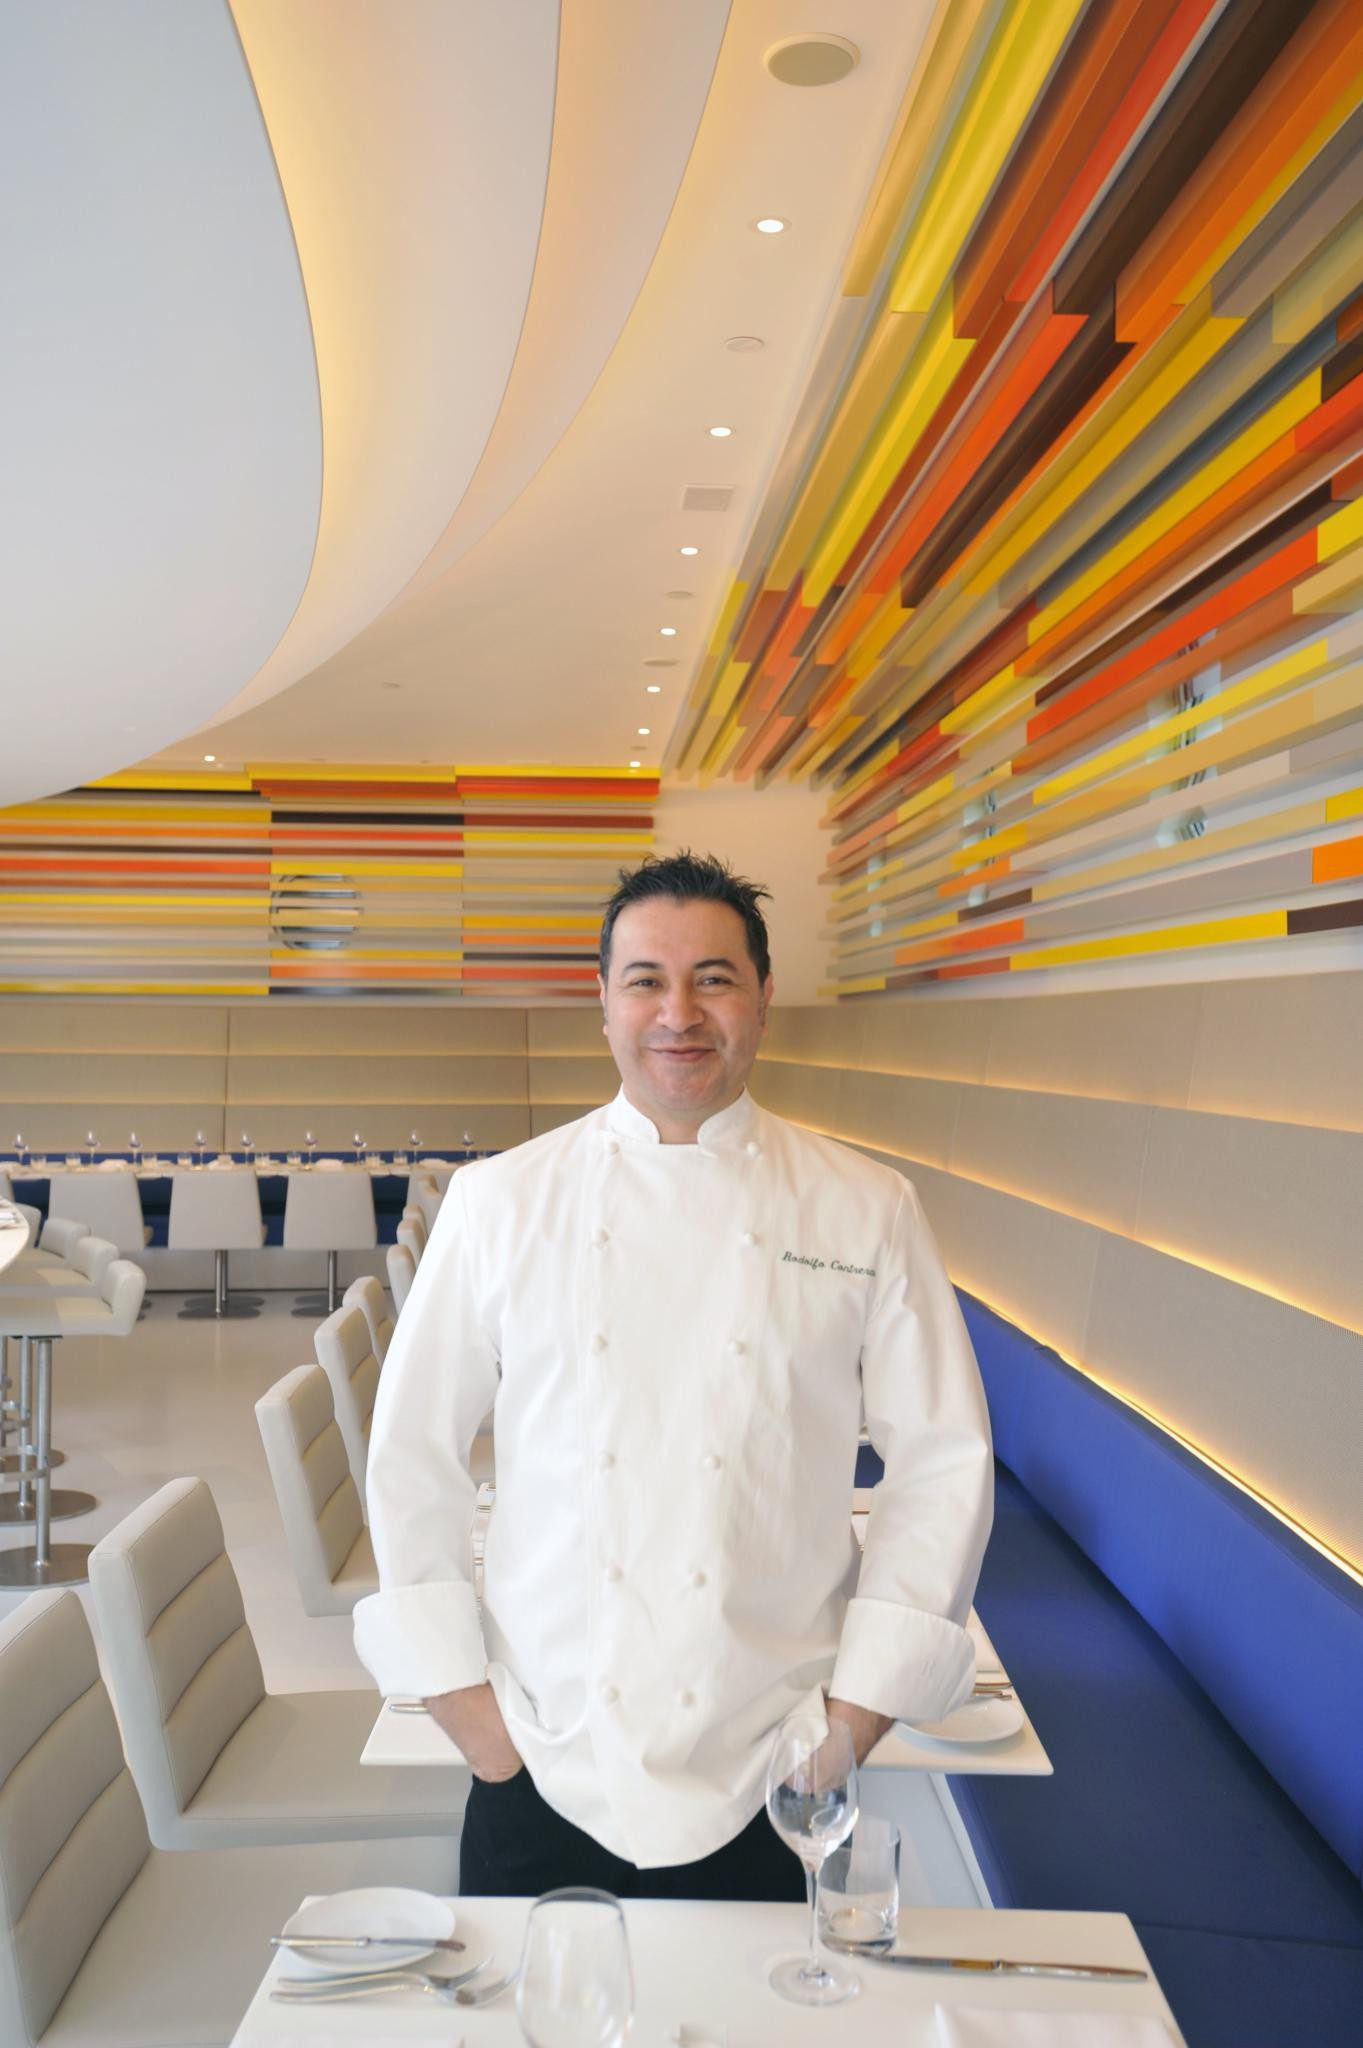 Chef Rodolfo Contreras in The Wright's dining room